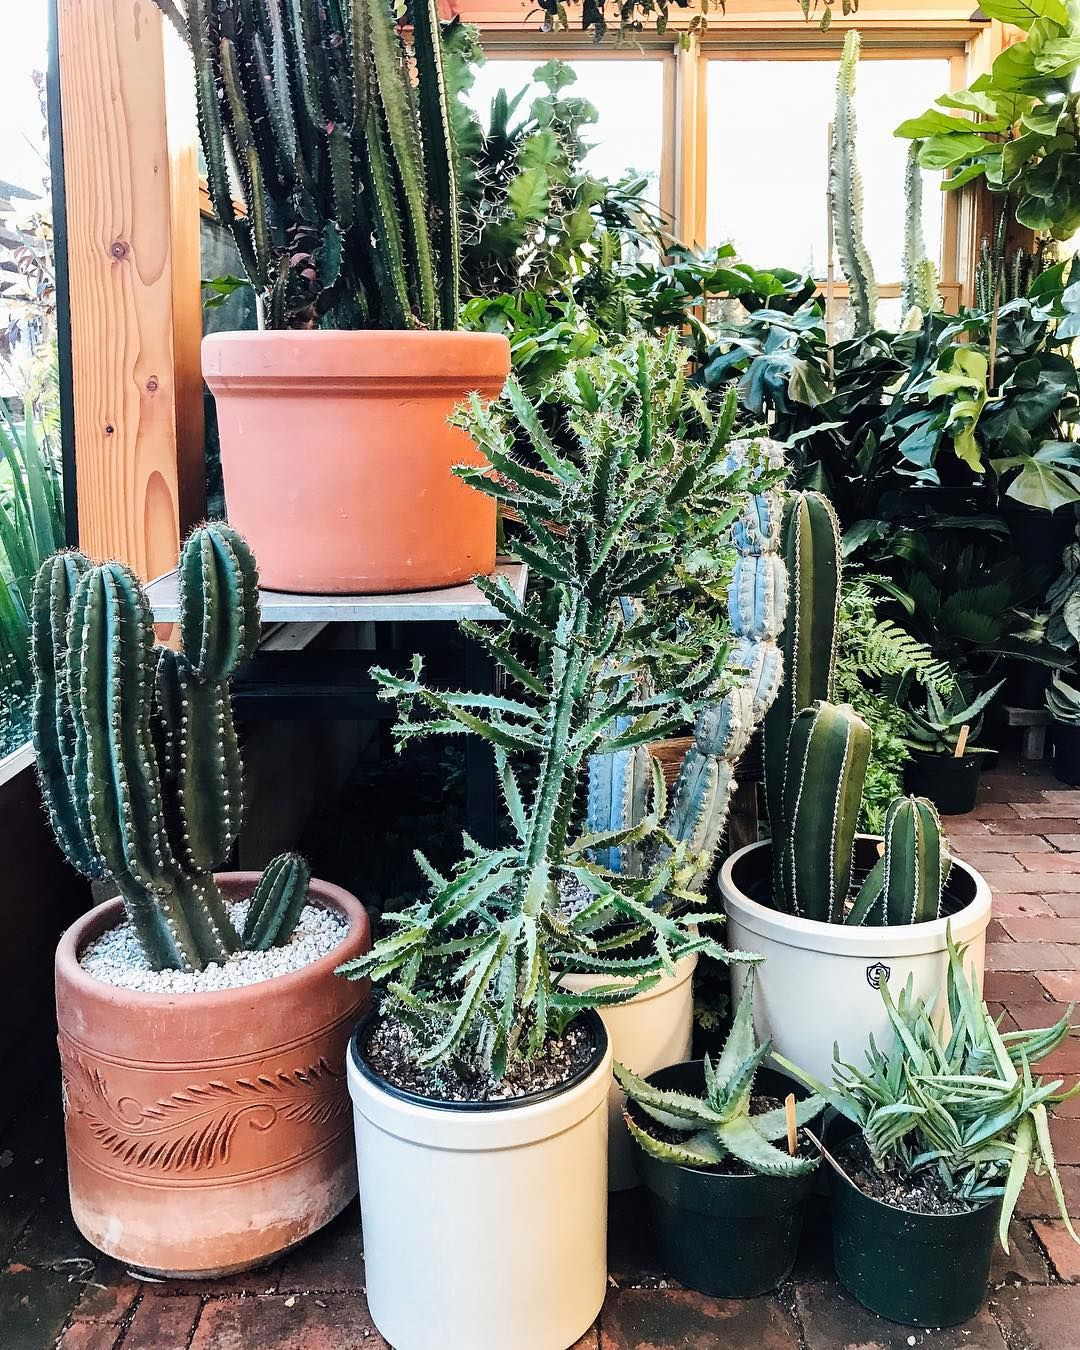 Our Cactus And Succulent Sale Is Ongoing Through Sunday 15 Off Large Specimens Like These Grab Yourself A Pr Cacti And Succulents Succulents Cactus For Sale